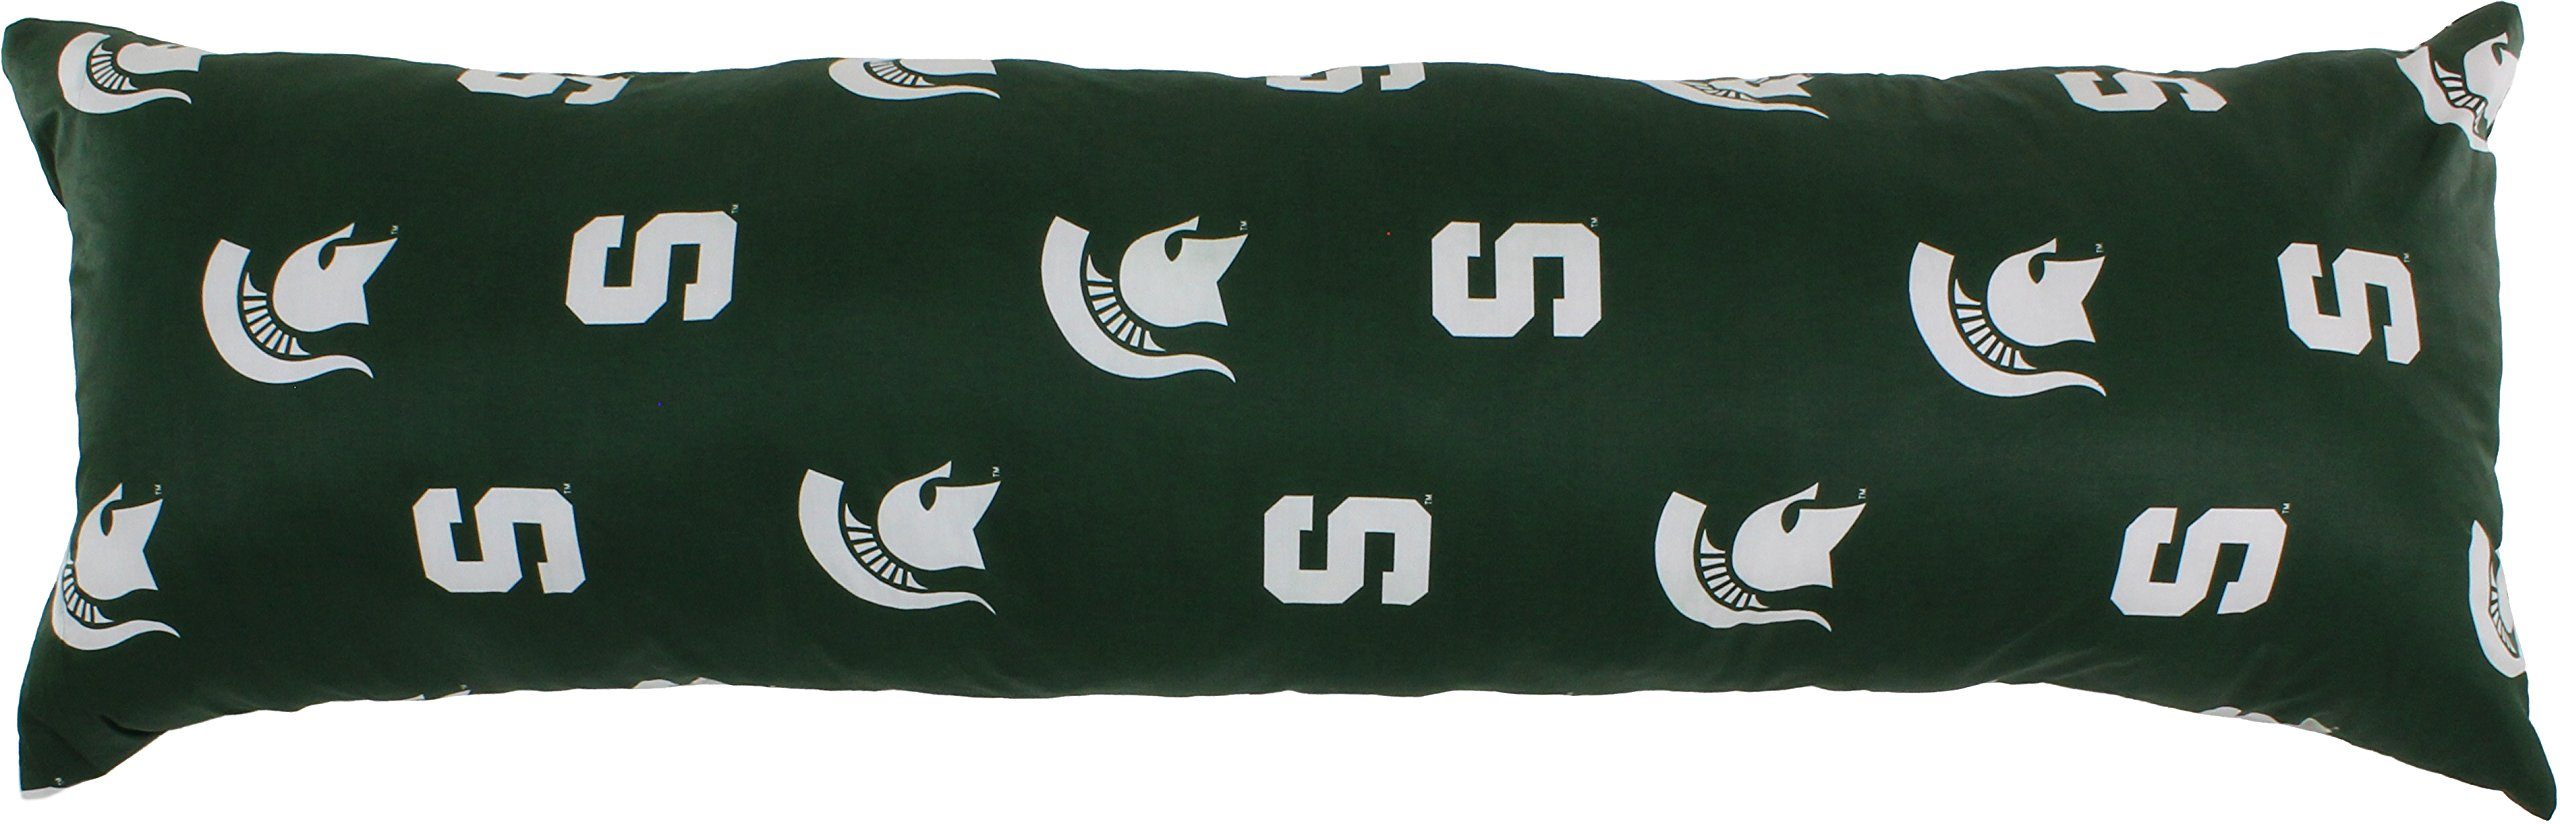 College Covers Michigan State Spartans Printed Body Pillow - 20'' x 60''